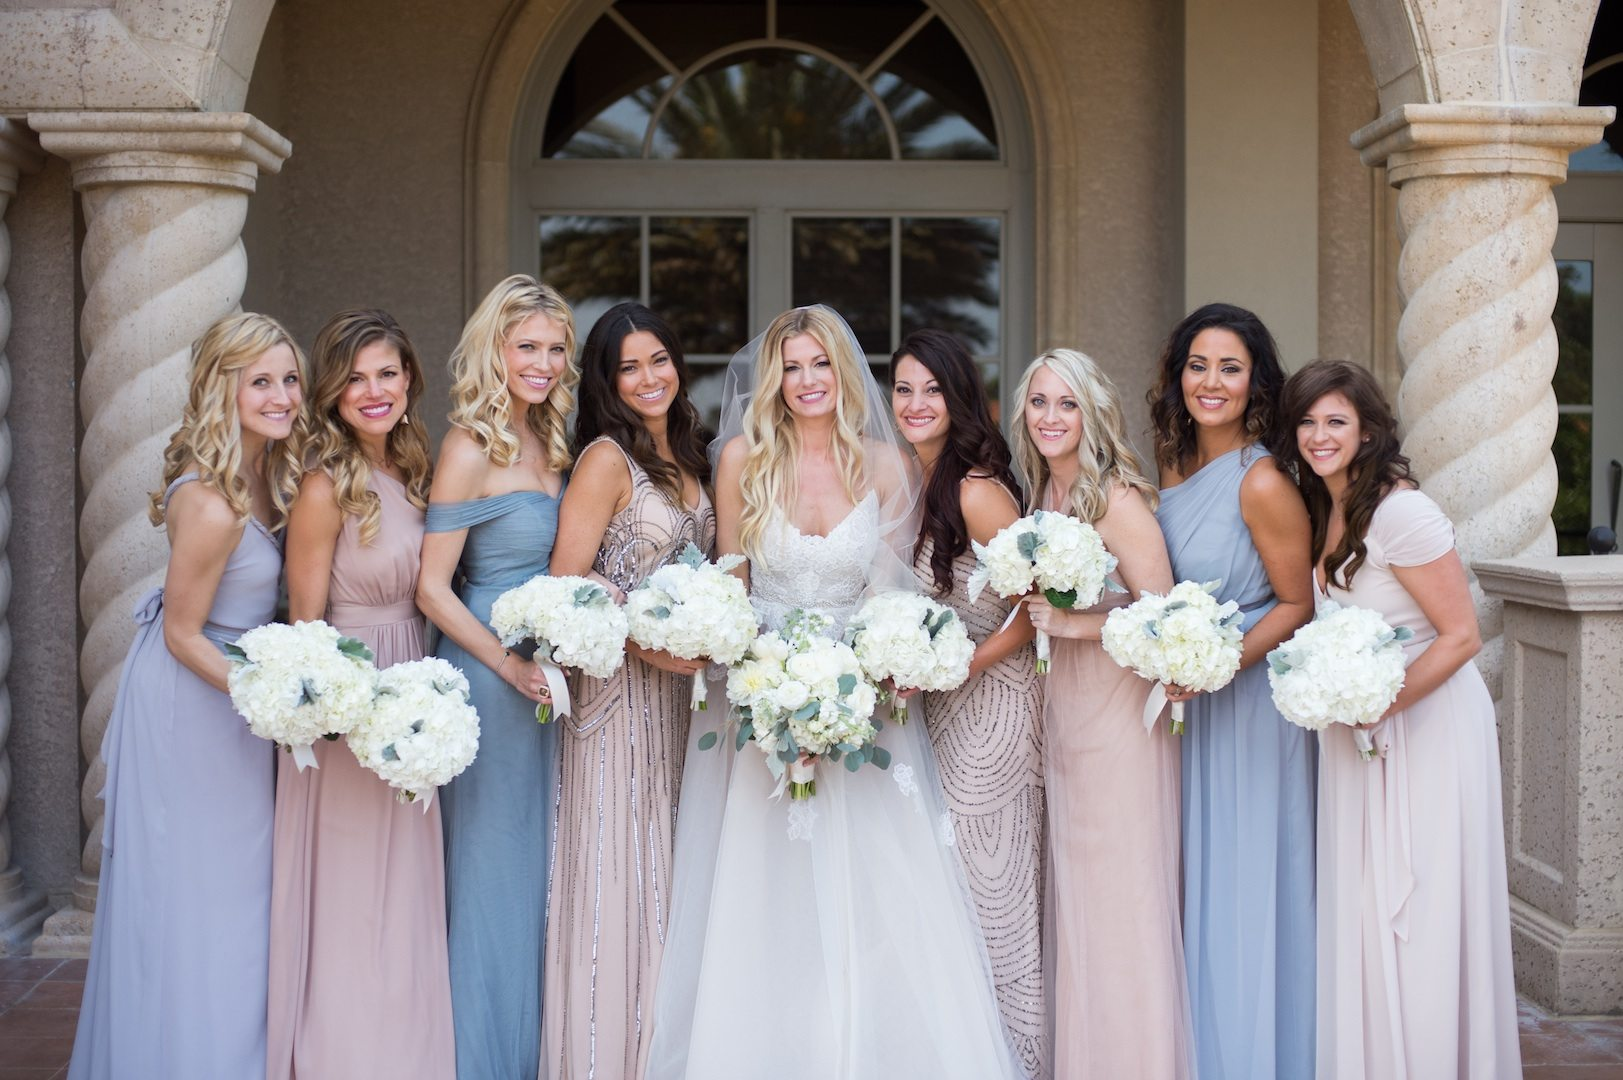 bridesmaids wearing mismatched bridesmaid dresses in cornflower blue and blush and sequins